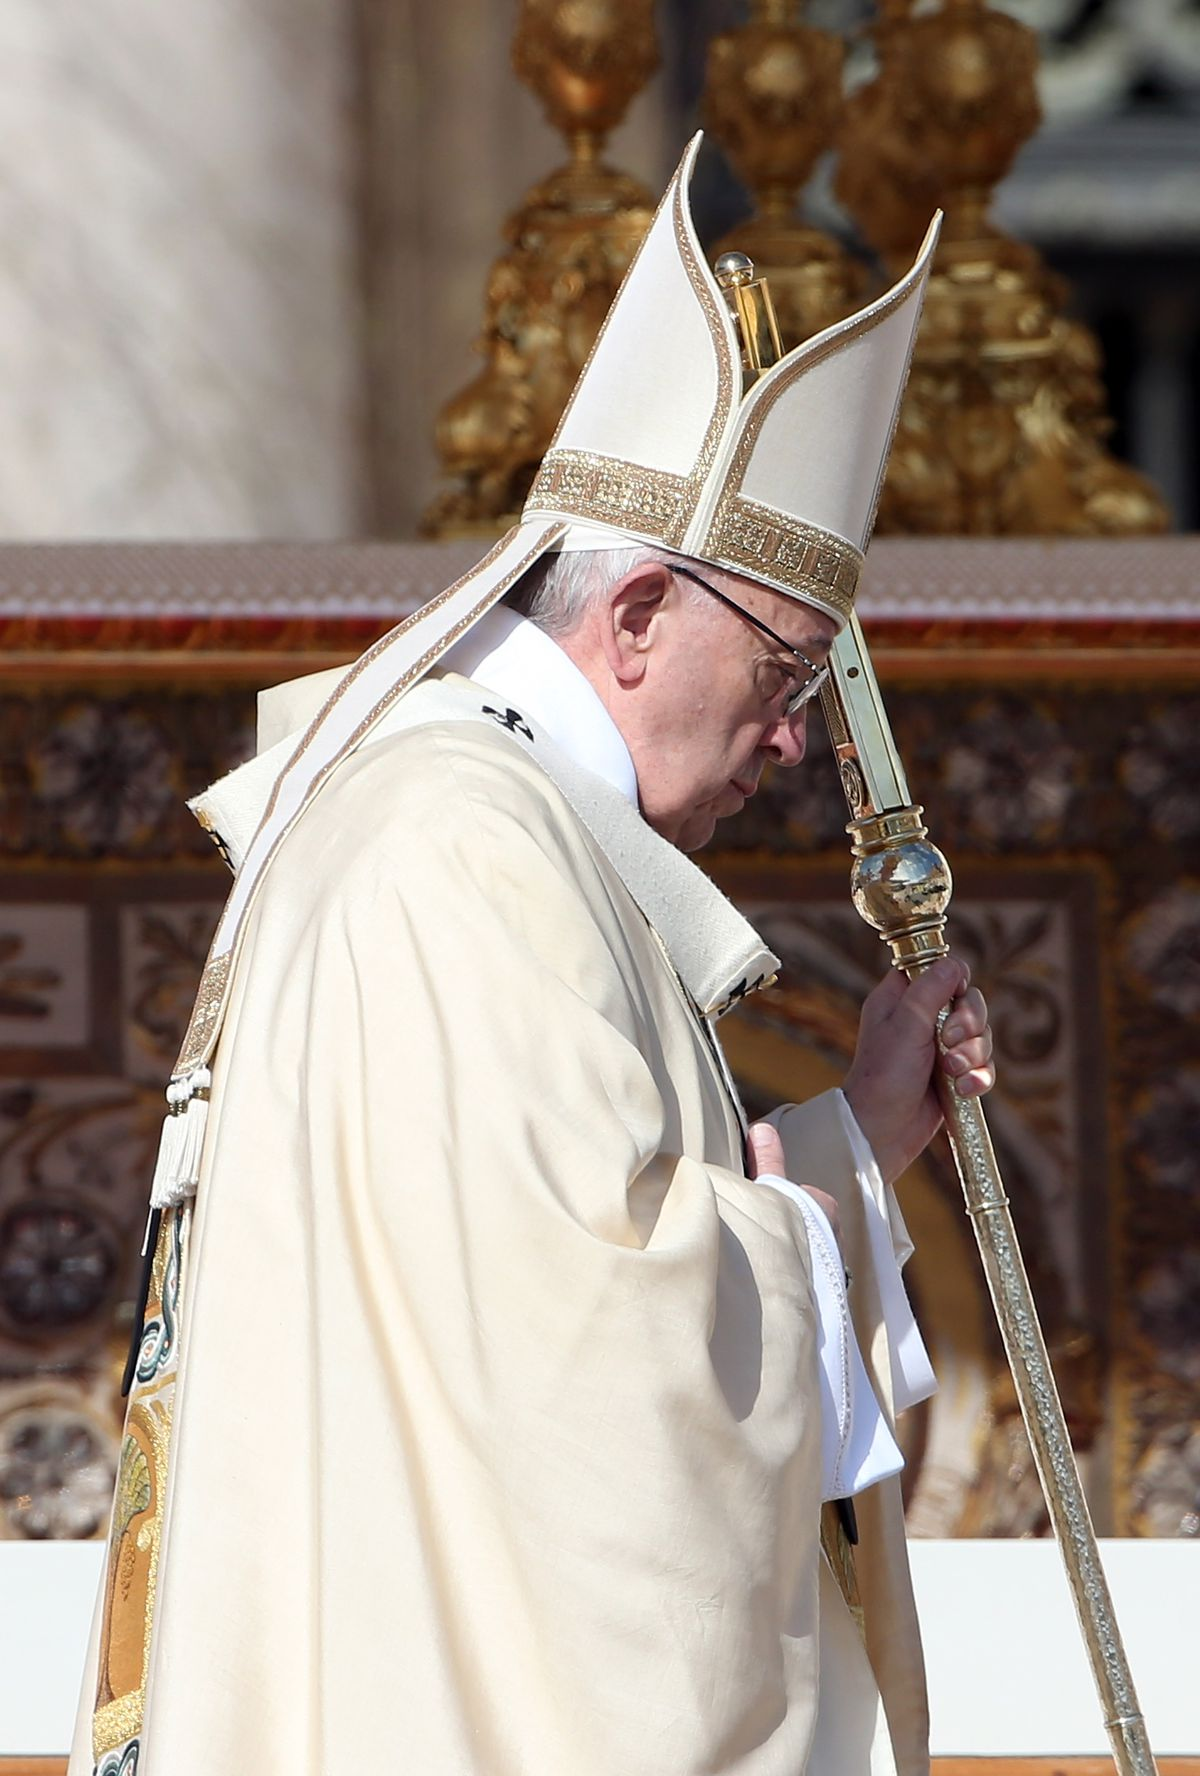 Pope Francis Attends The Easter Mass and Delivers His Urbi Et Orbi Blessing